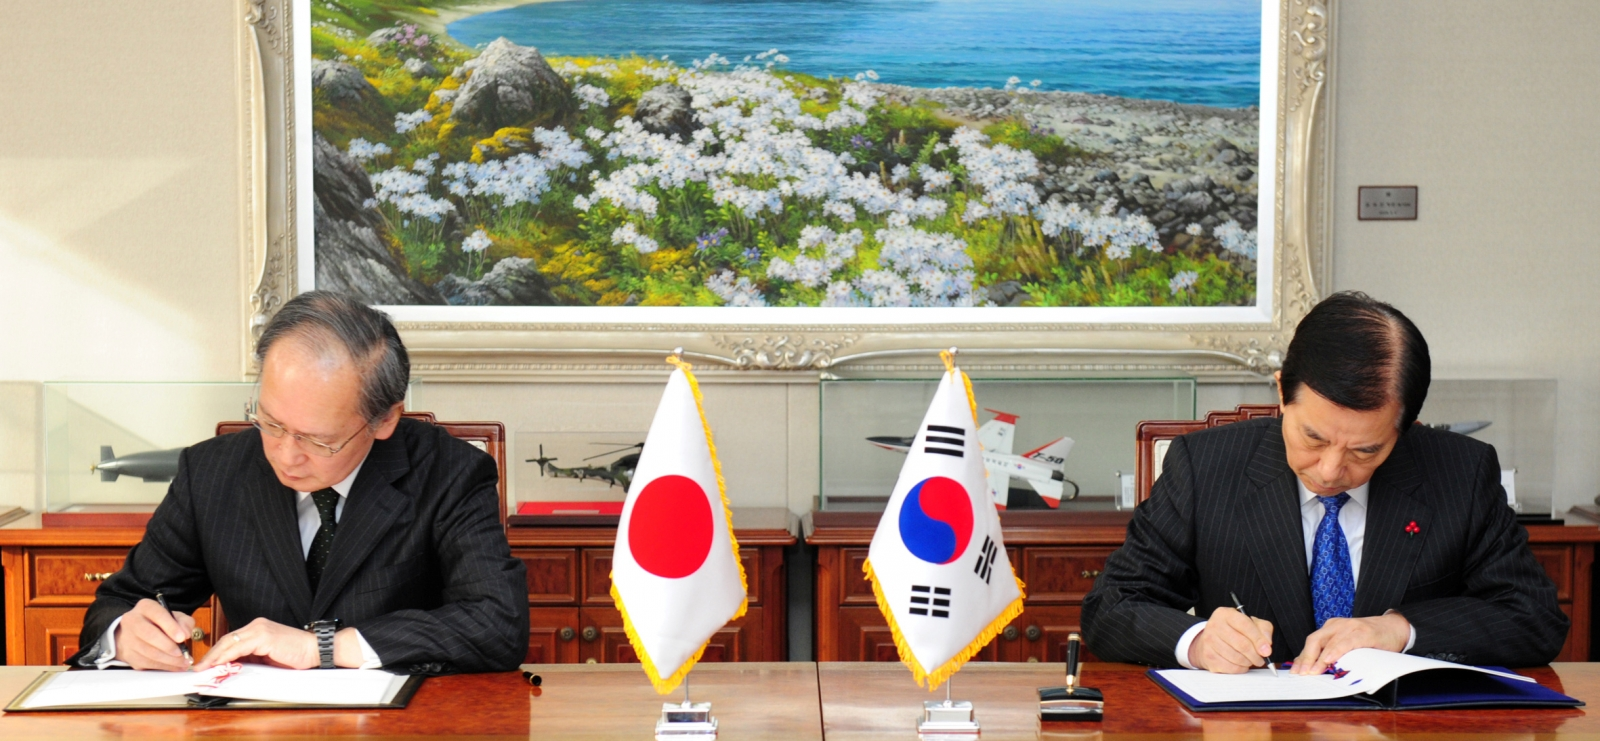 South Korea Japan intelligence agreement